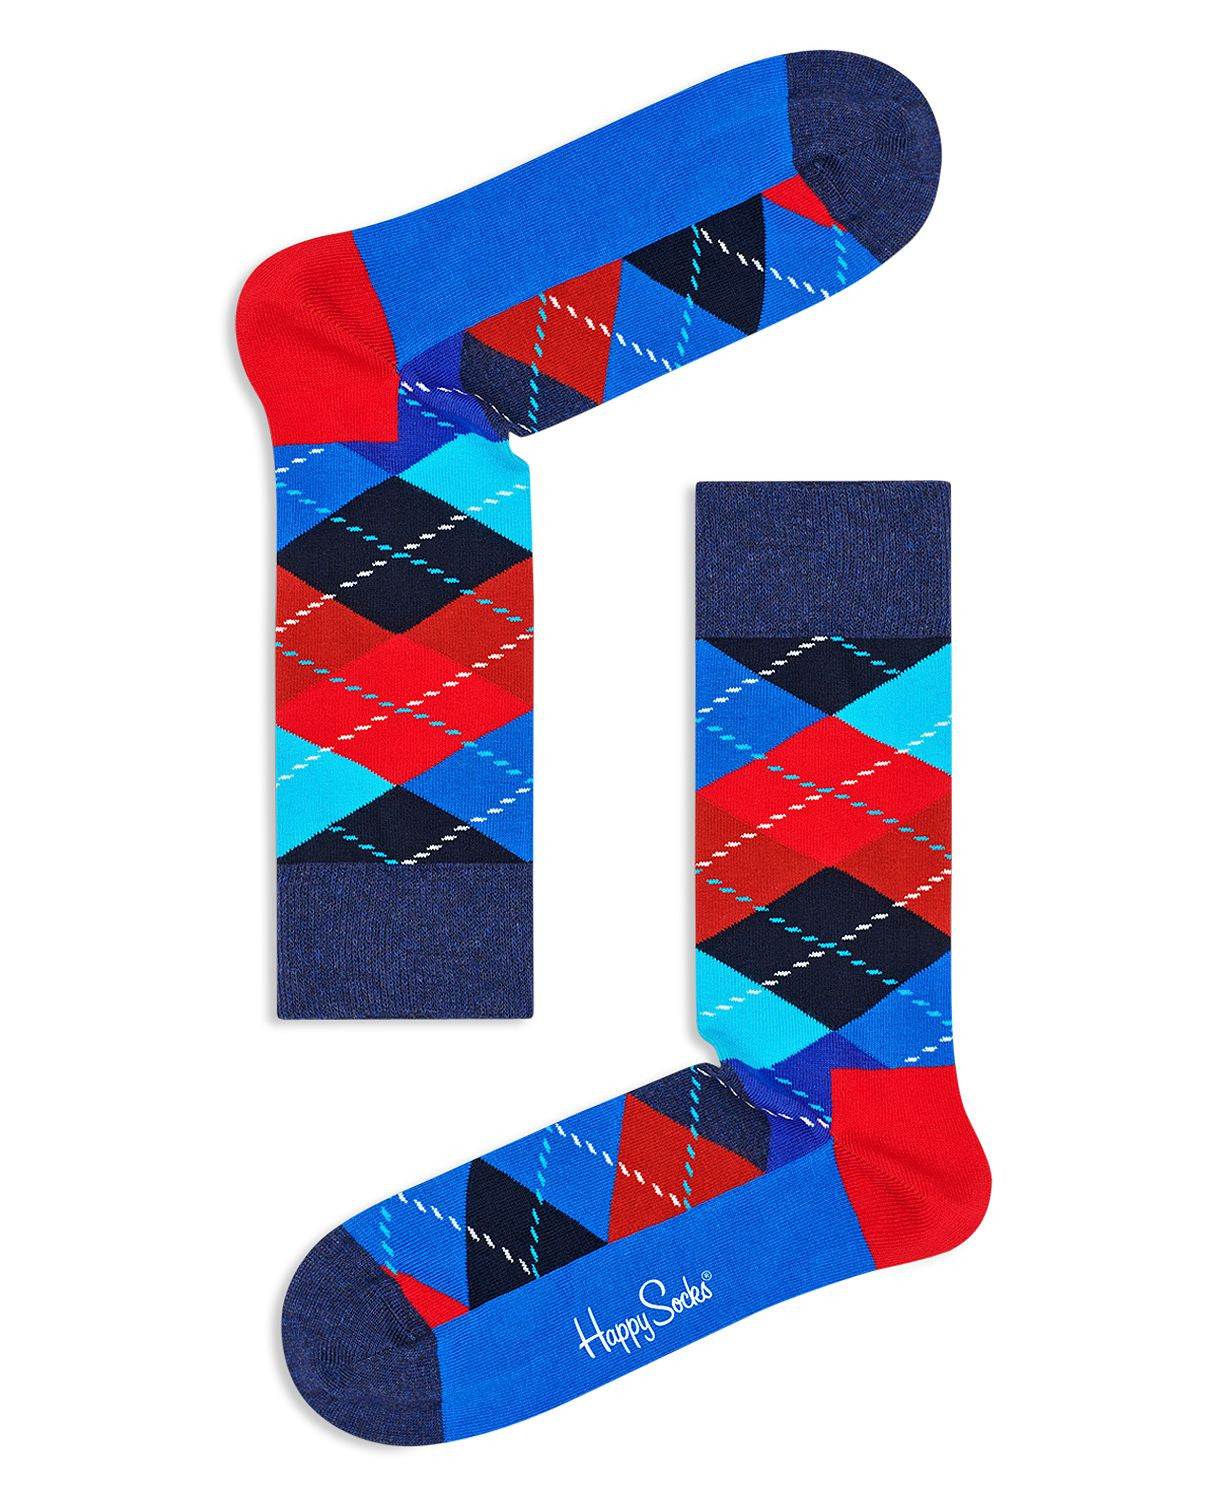 Happy Socks Argyle Socks Blue Multi